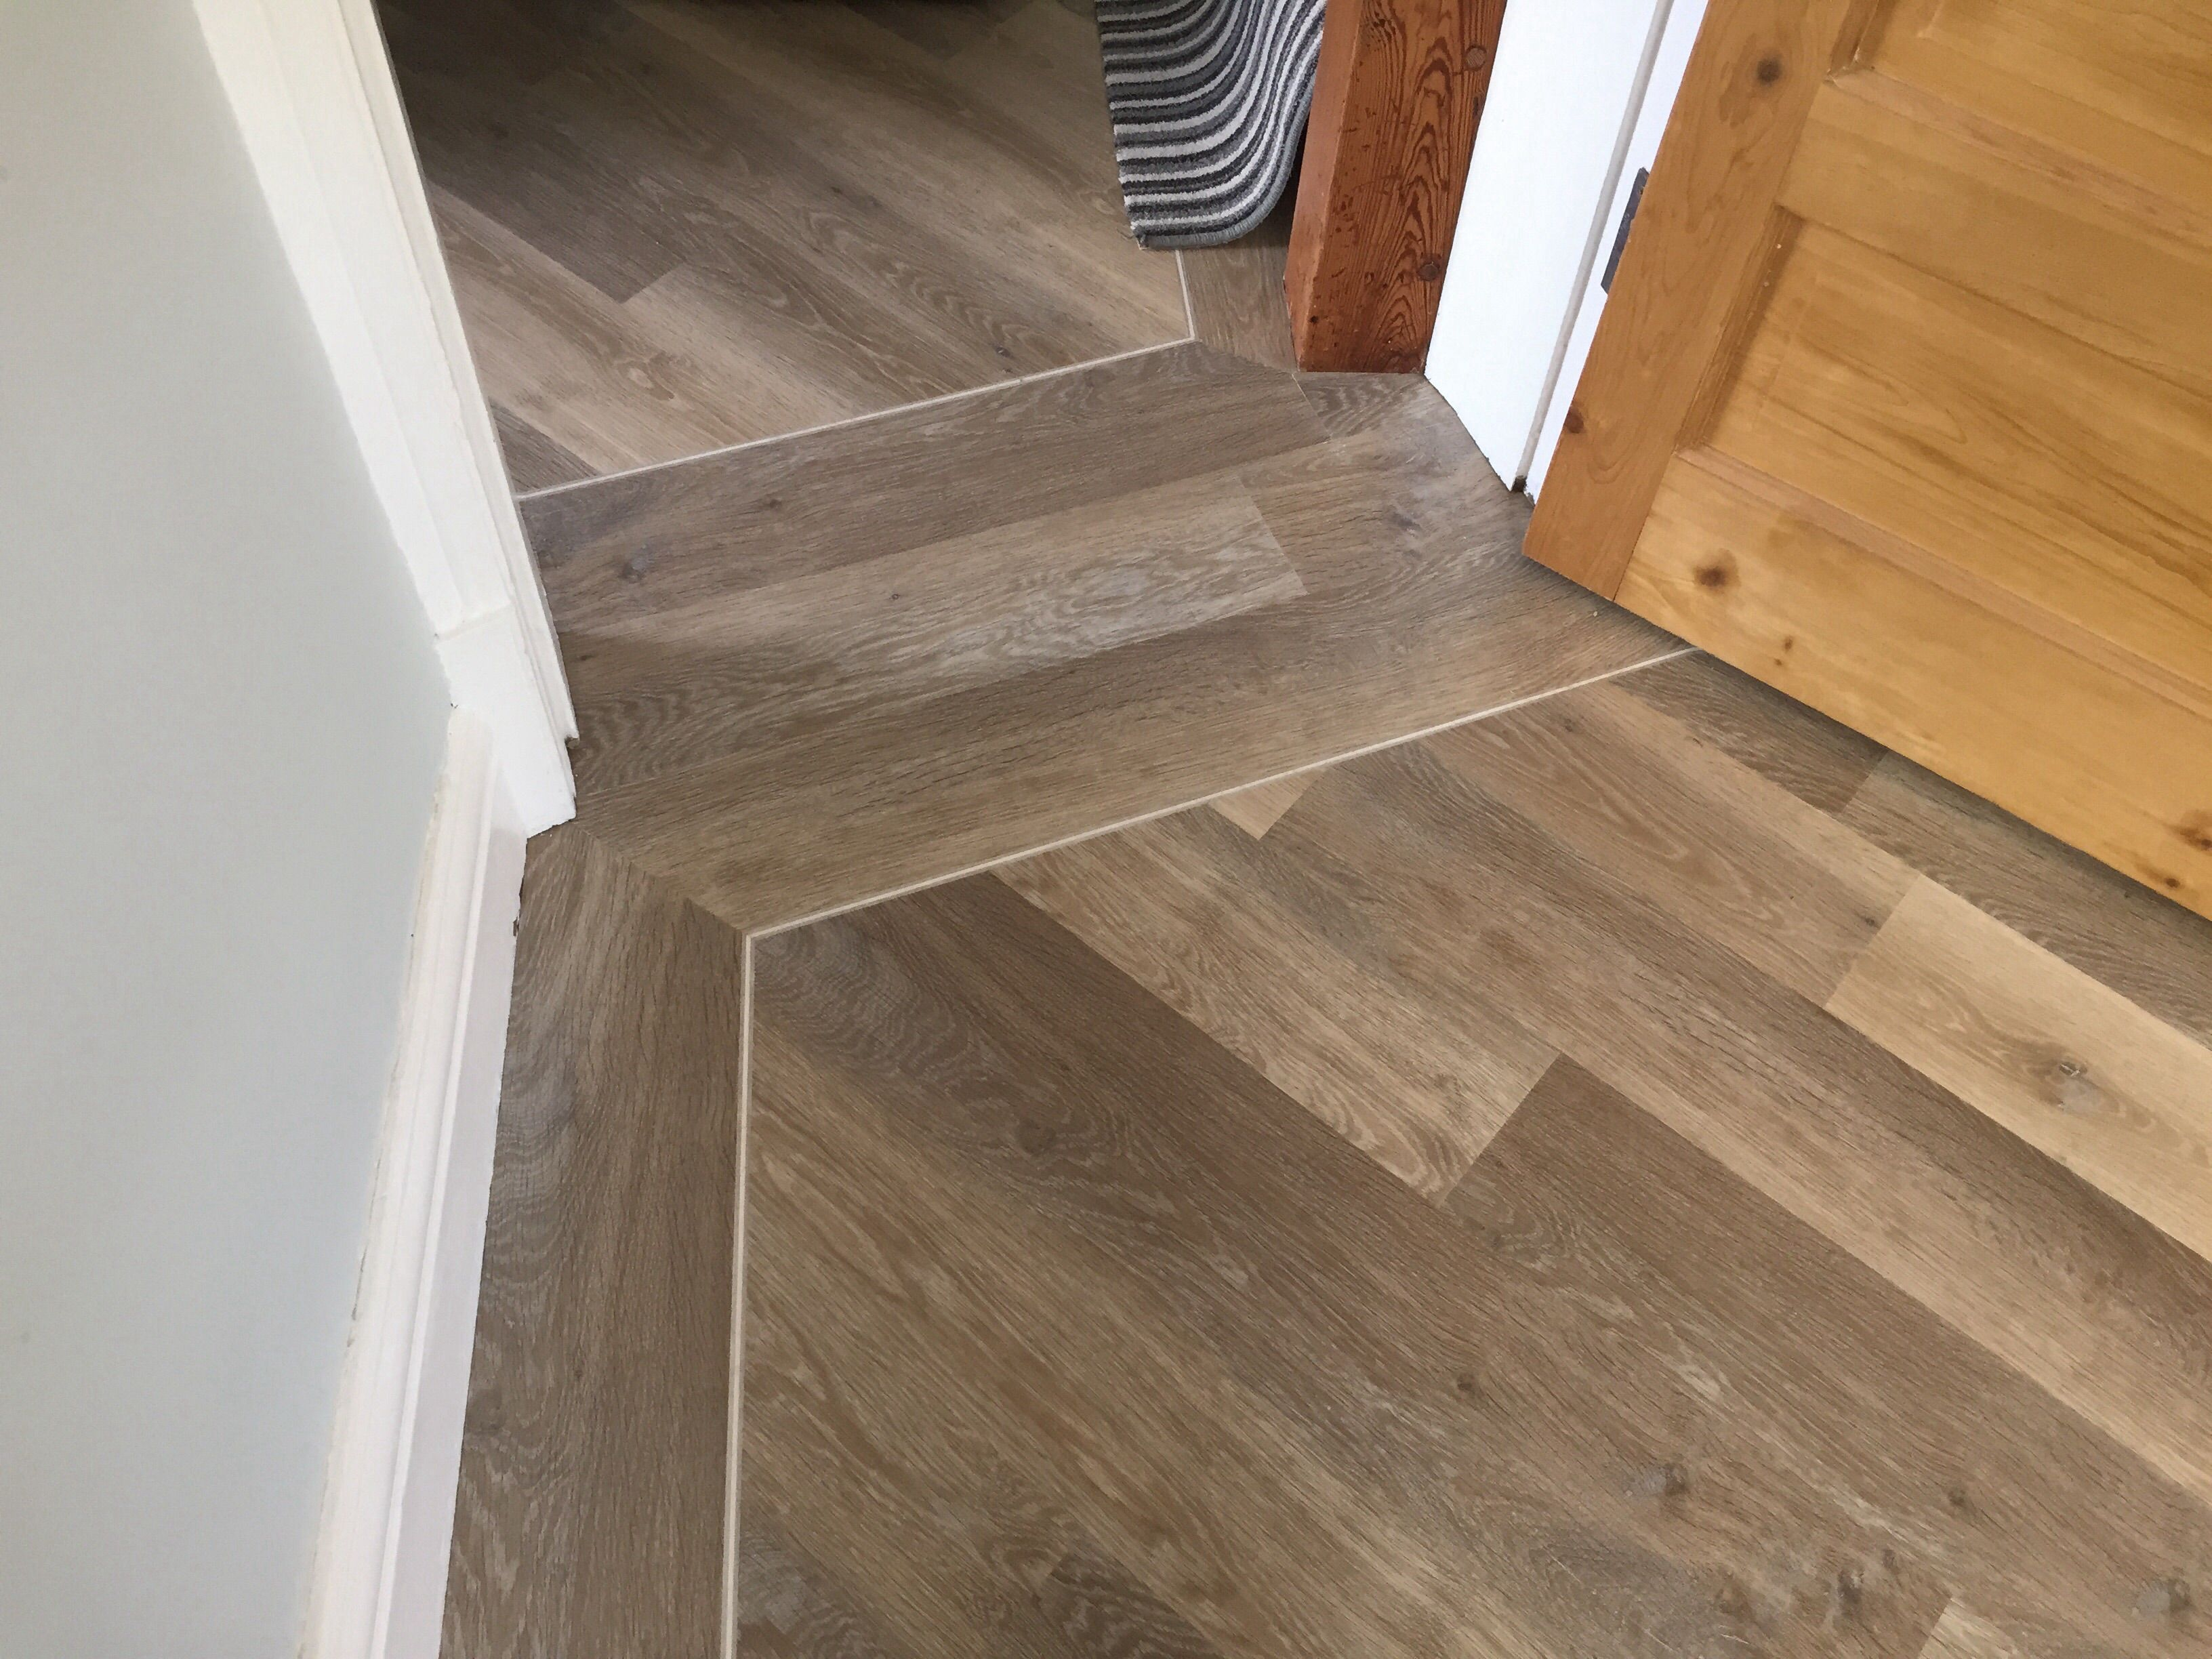 lvt luxury flooring manchester farnworth vinyl tile karndean lancashire bolton floor in